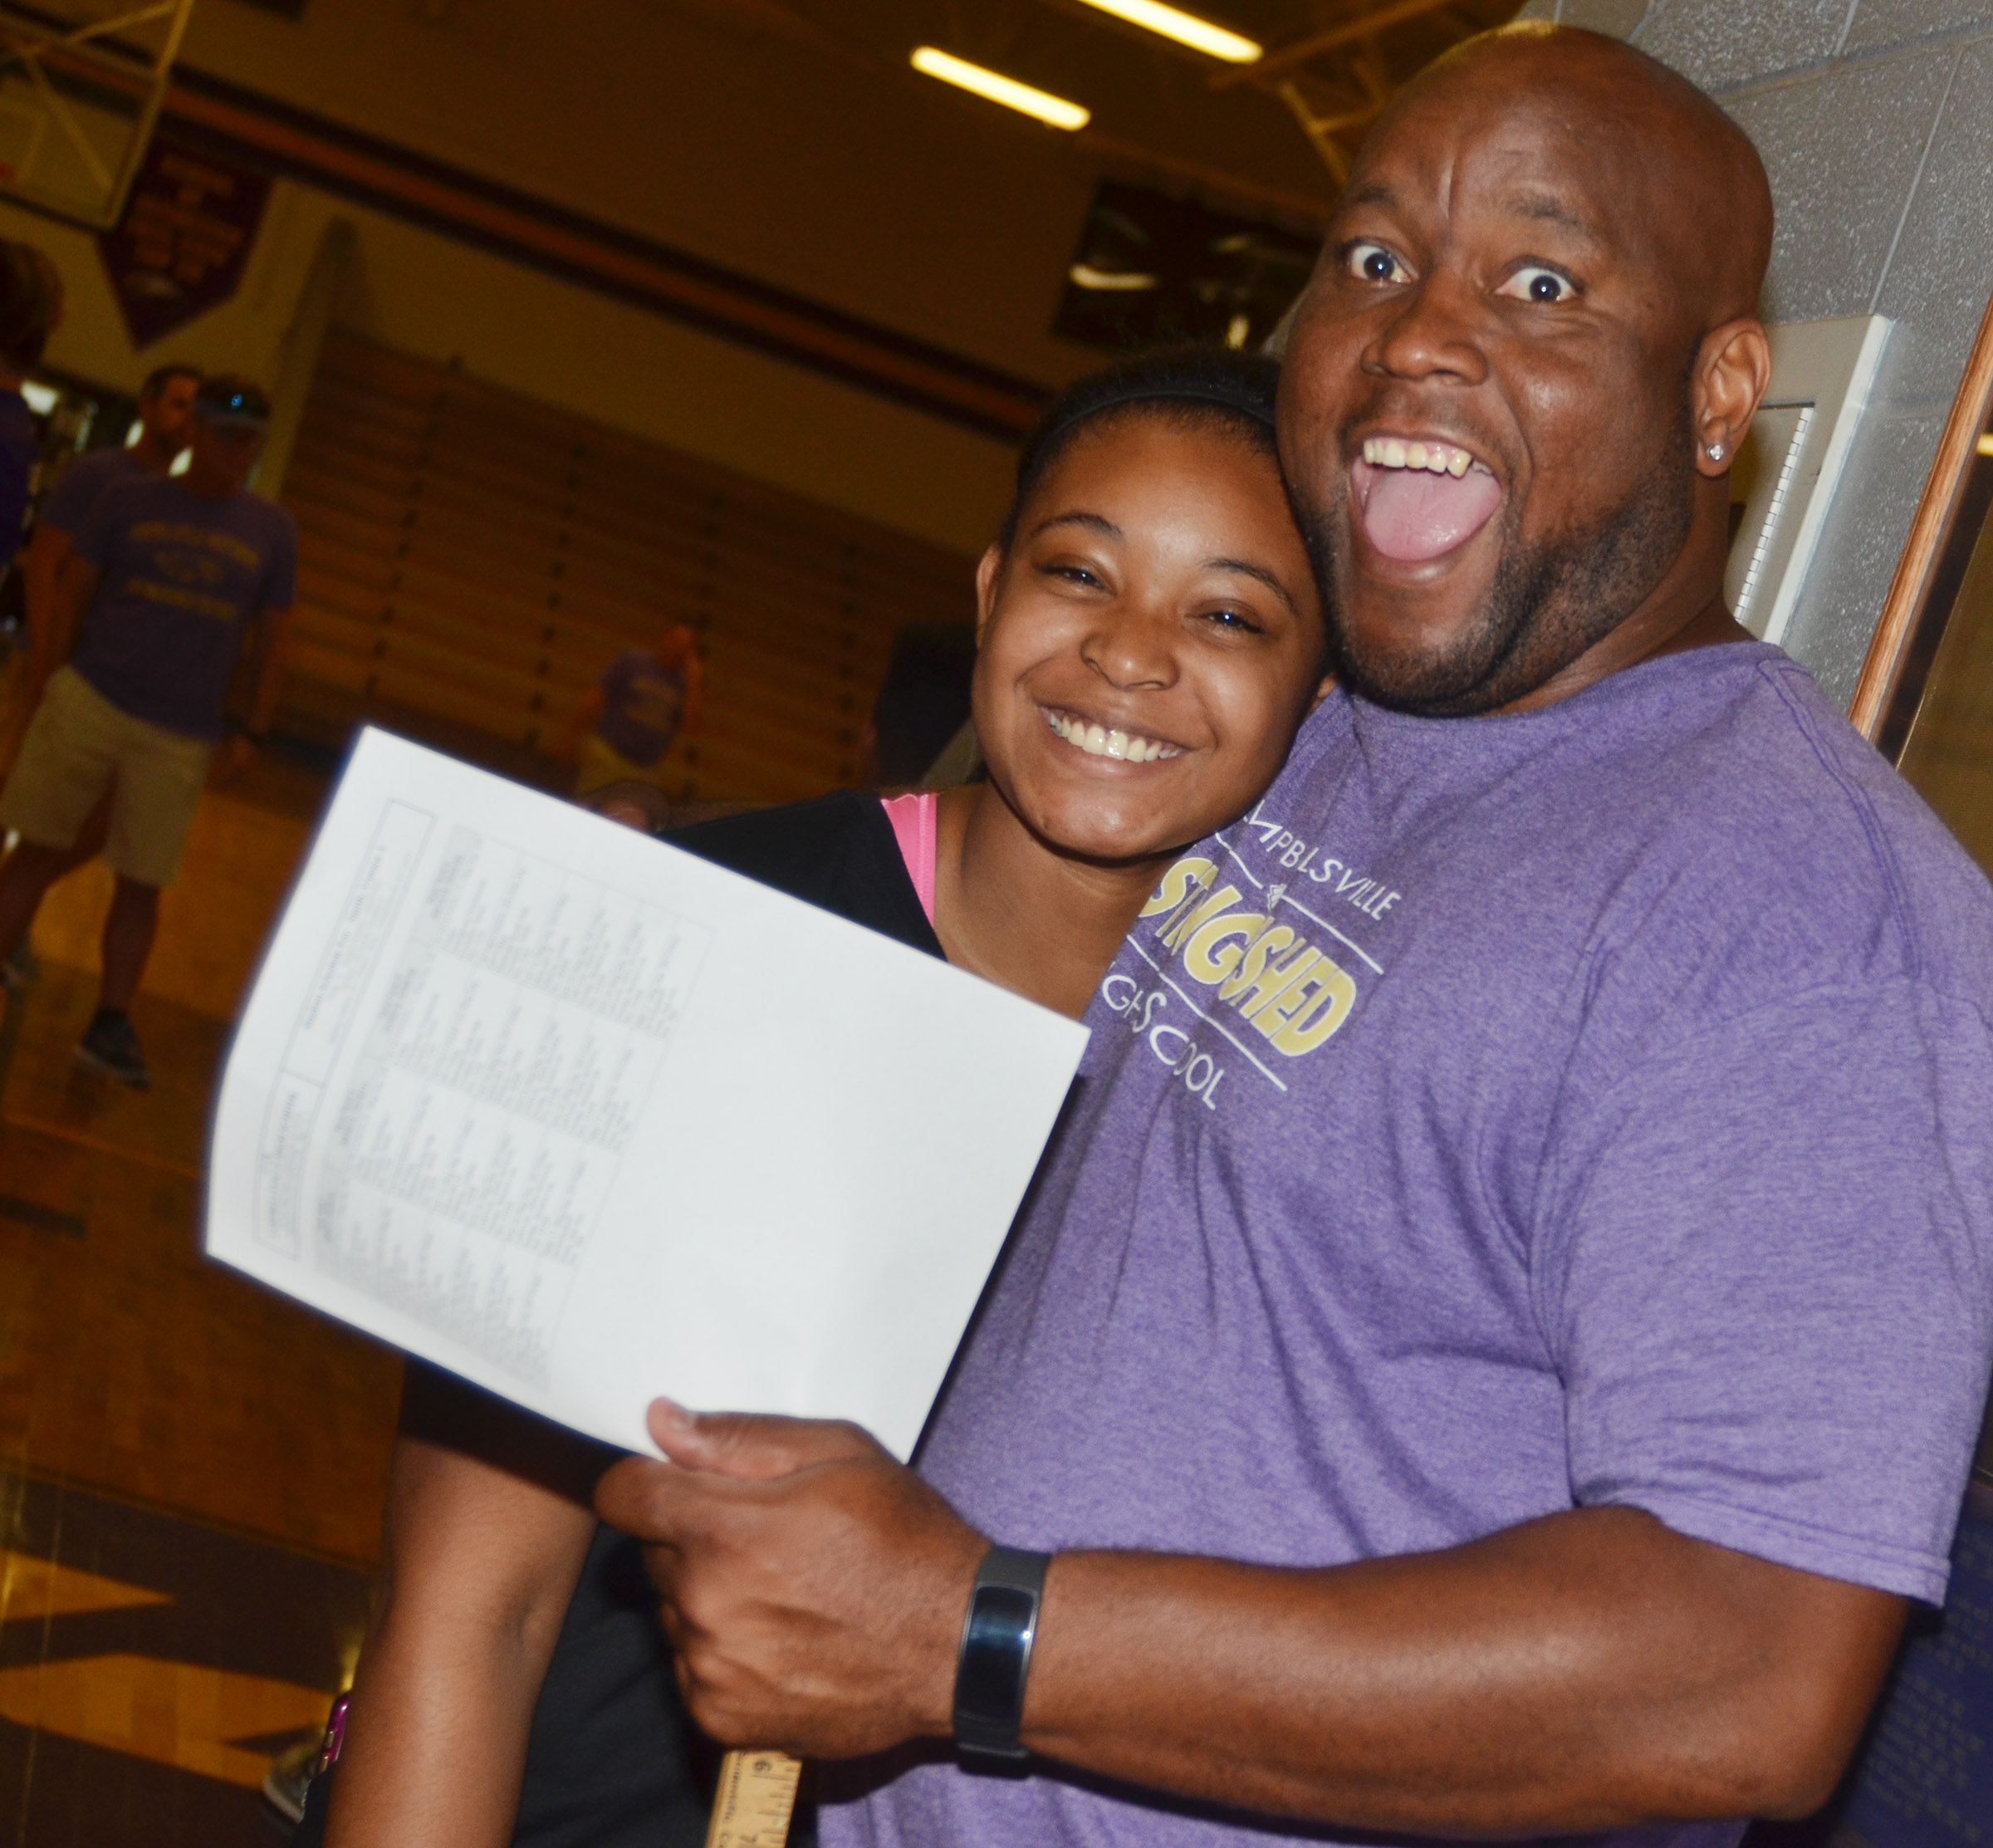 CHS exceptional child educator Anthony Epps poses for a photo with senior Vonnea Smith.